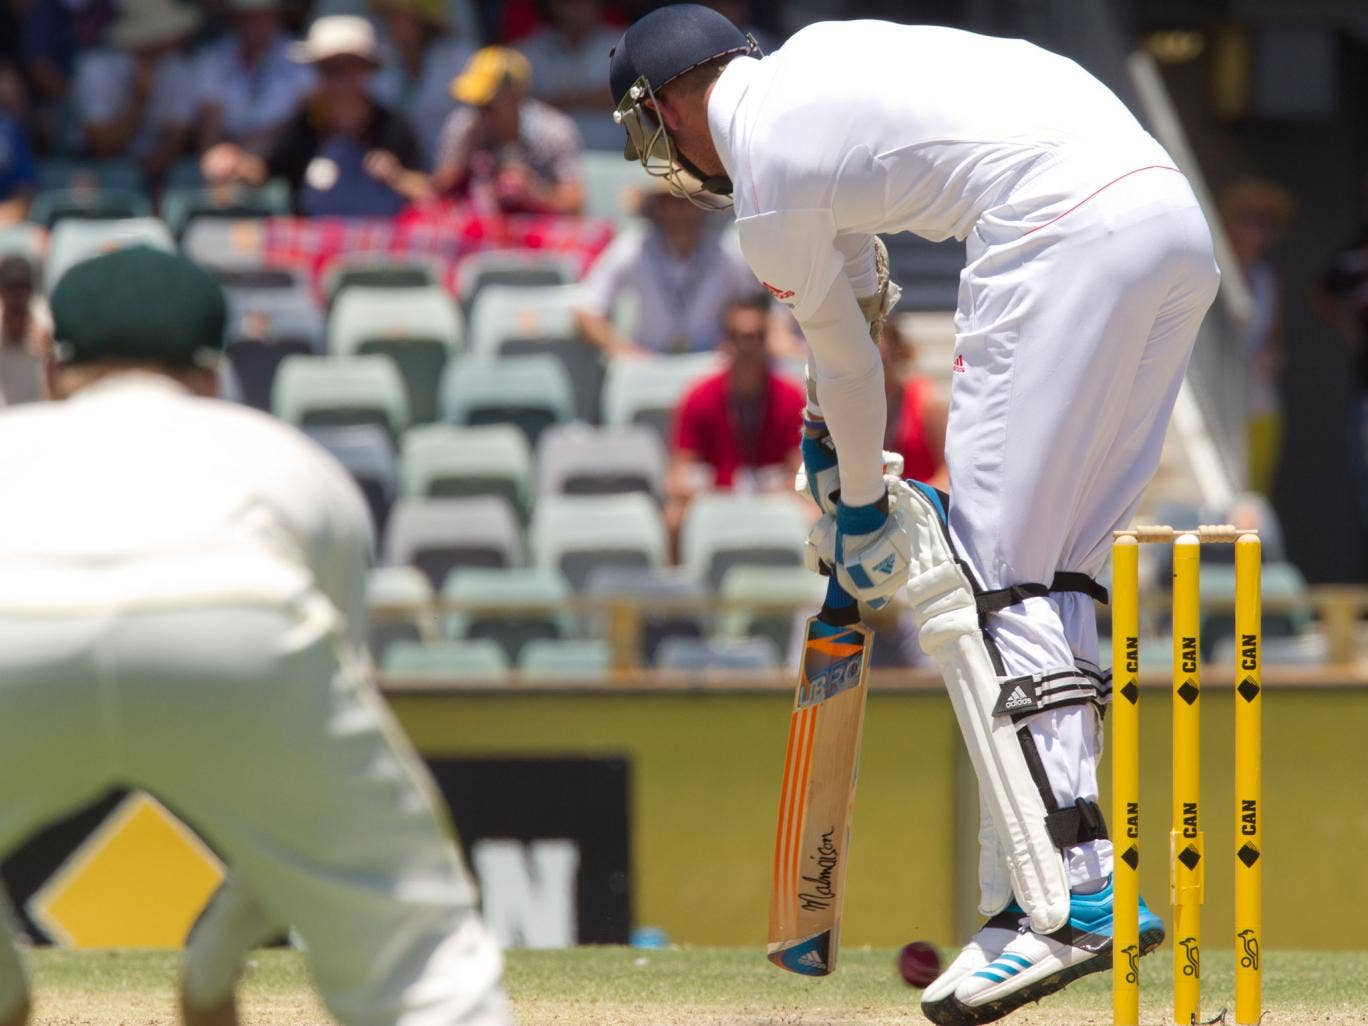 Stuart Broad is hit on the foot by a Mitchell Johnson full-toss delivery